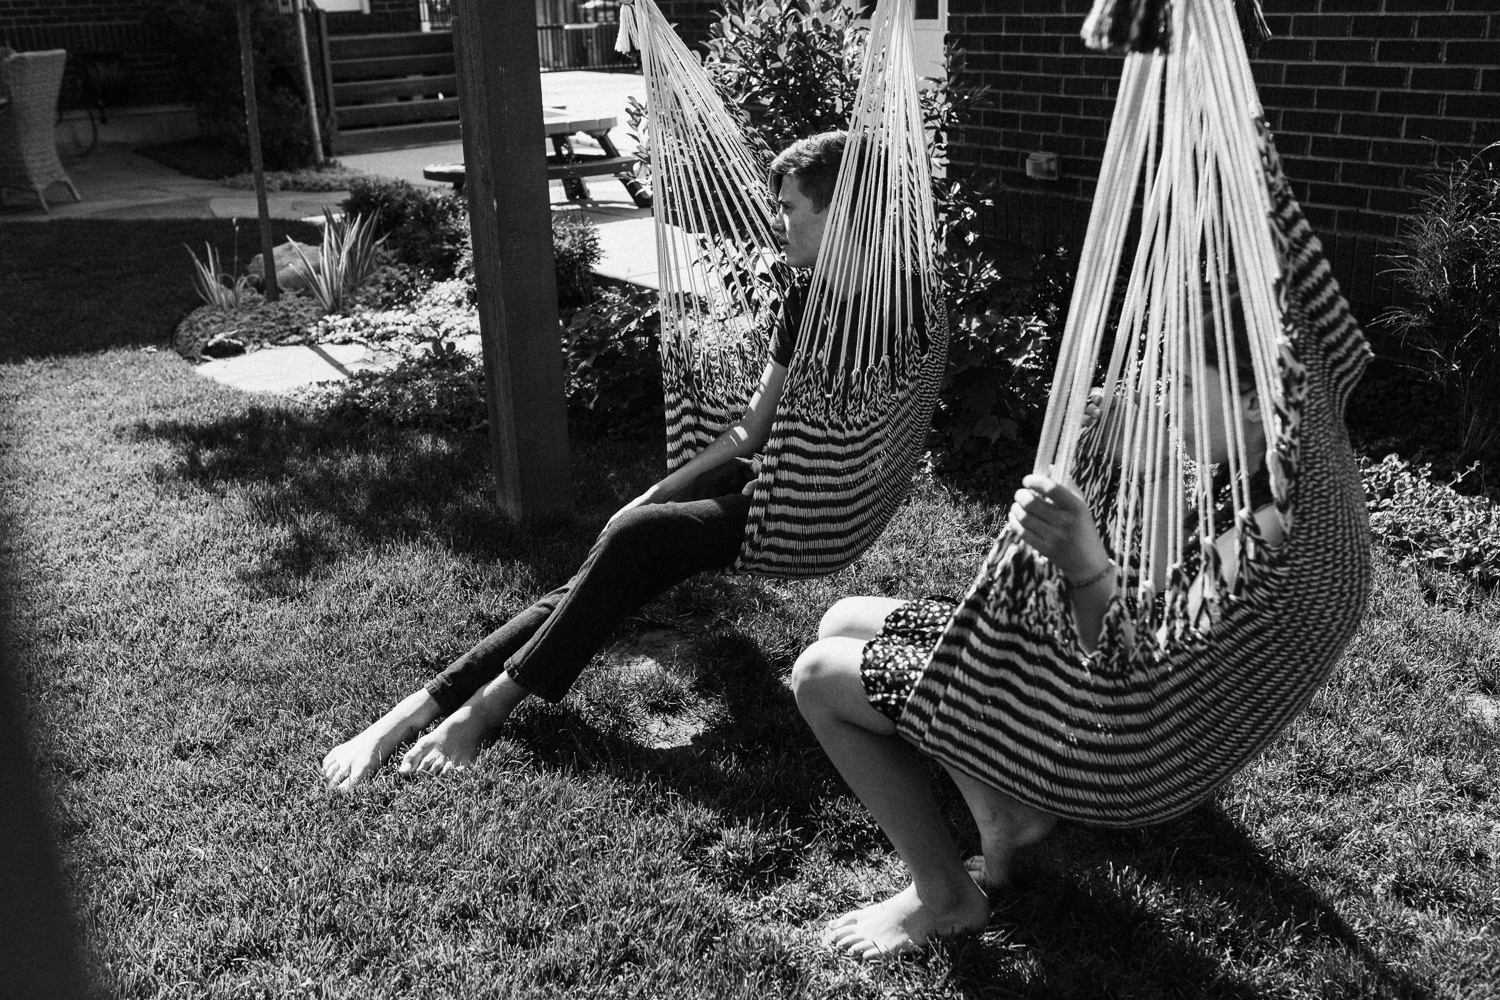 candid-black-and-white-photo-sitting-in-hammock-swings-during-in-home-session-with-jen-fairchild-in-salt-lake-city-utah